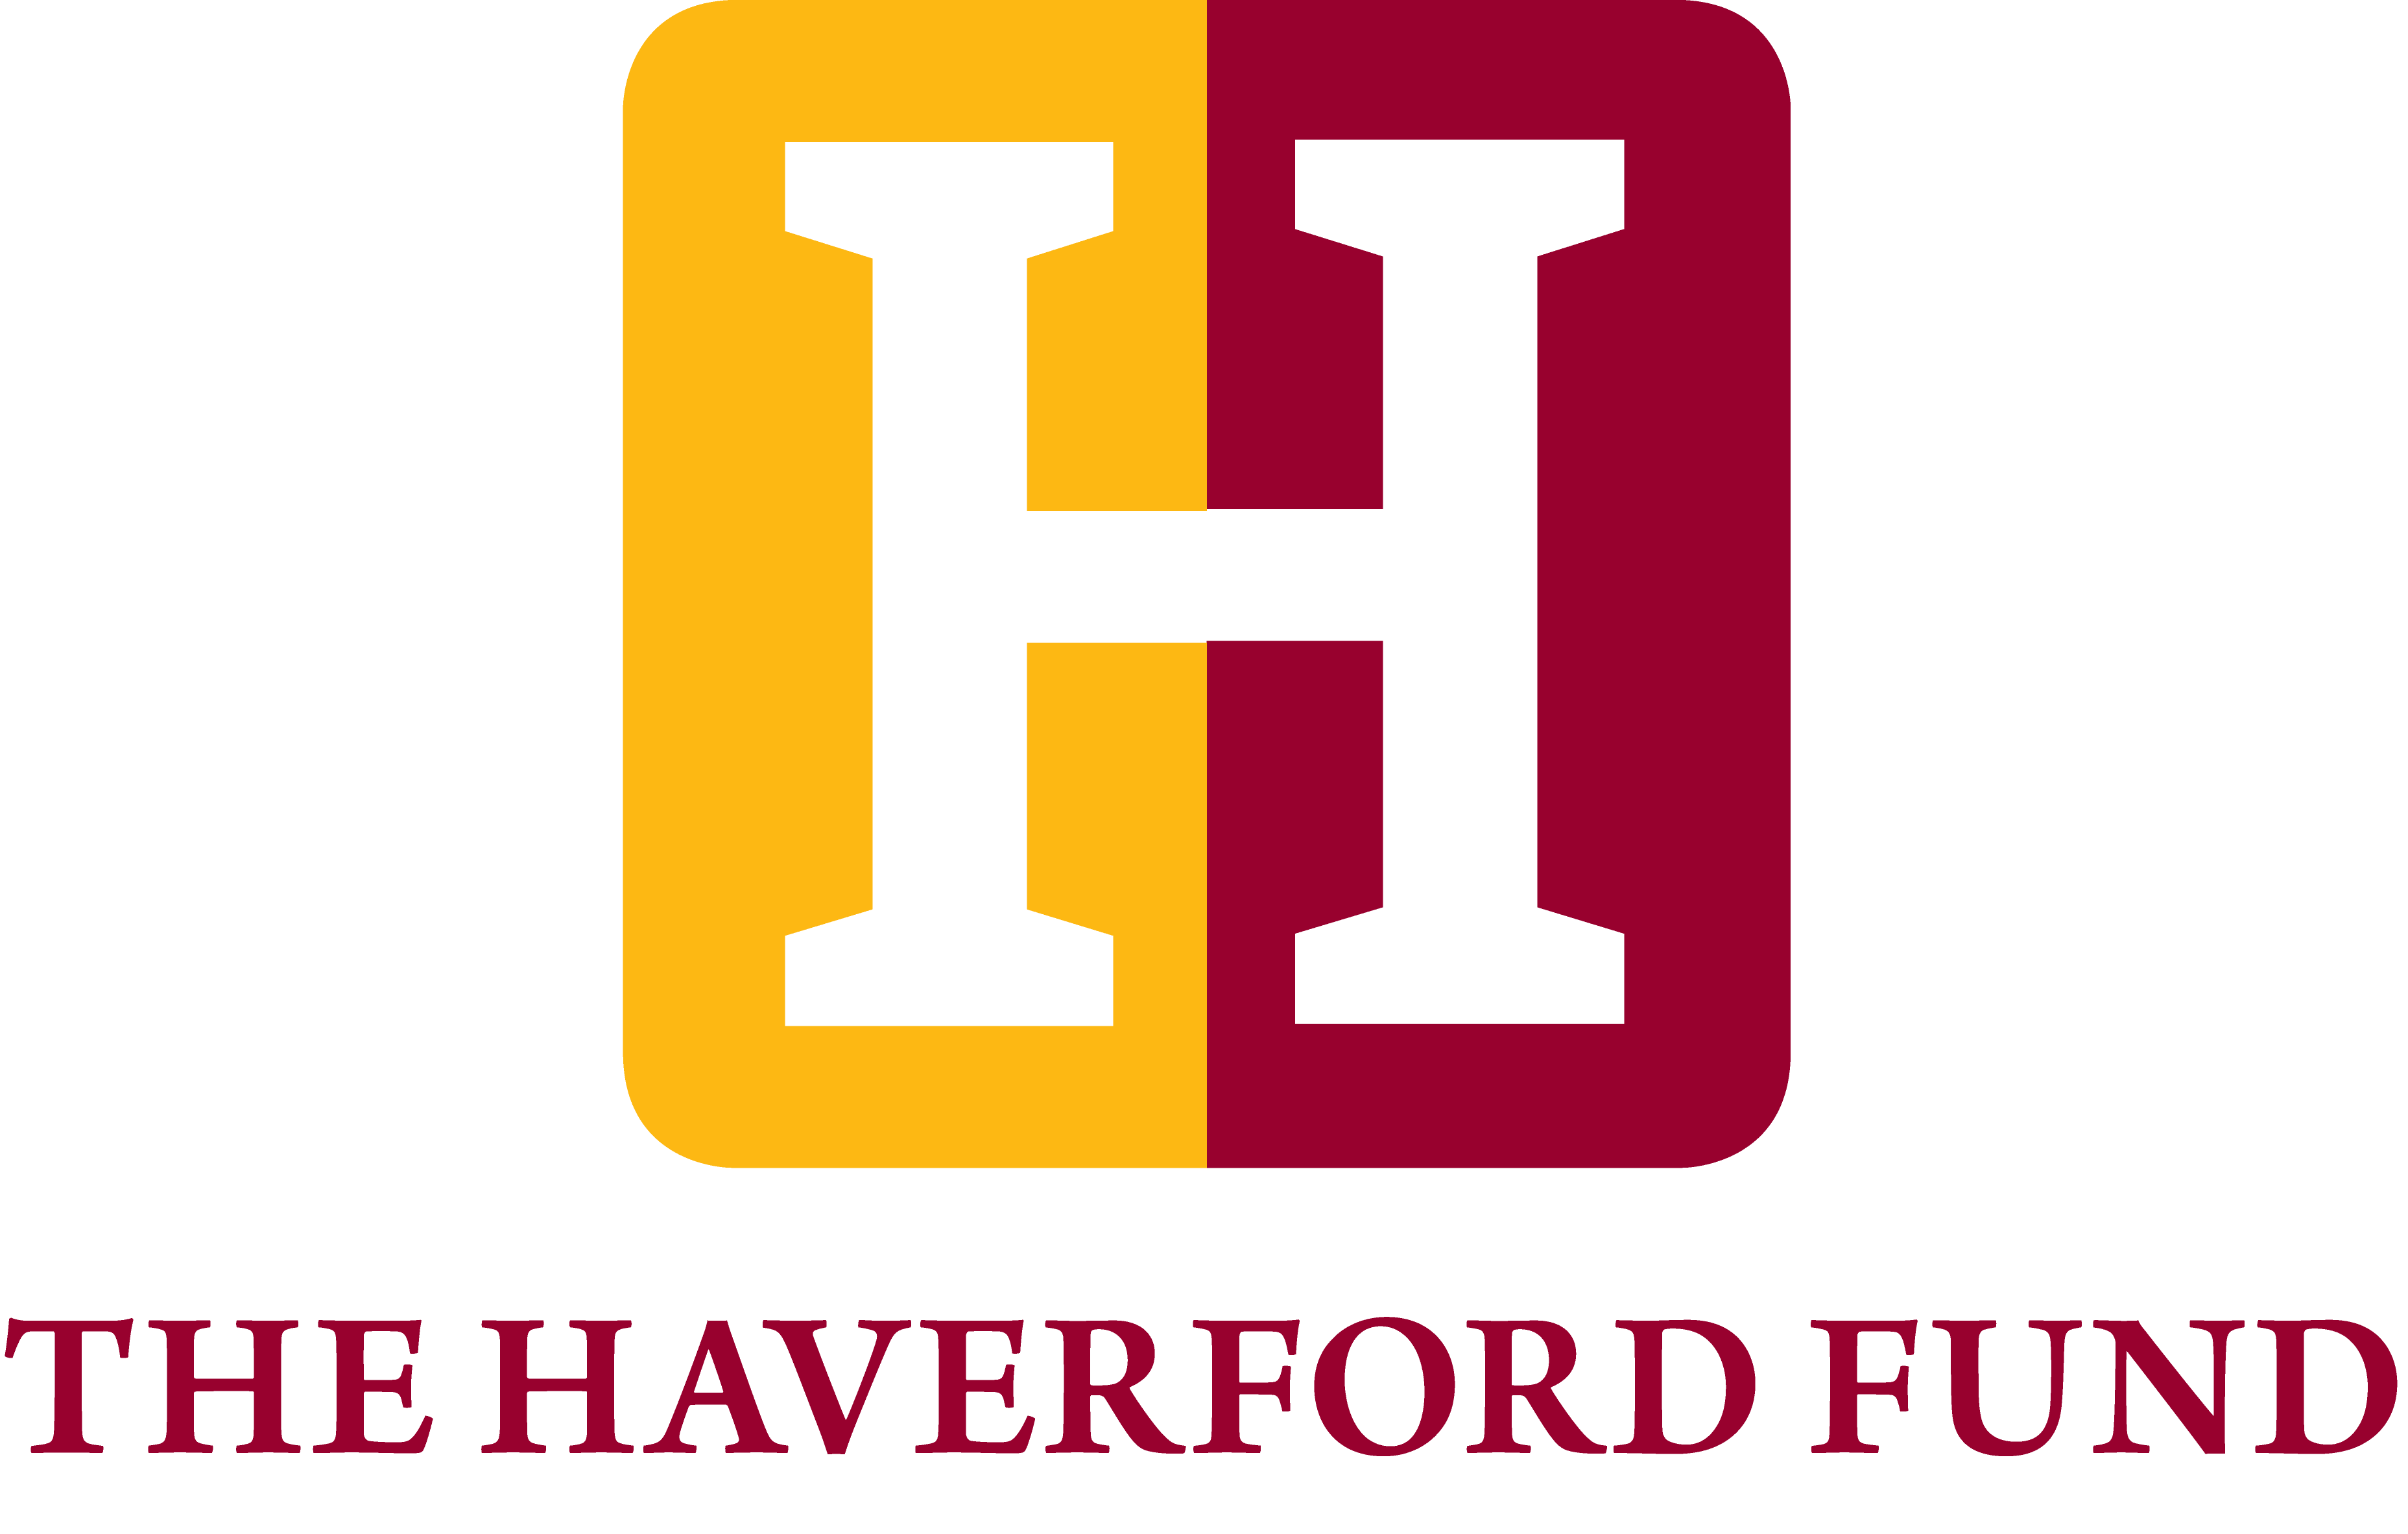 The Haverford Fund